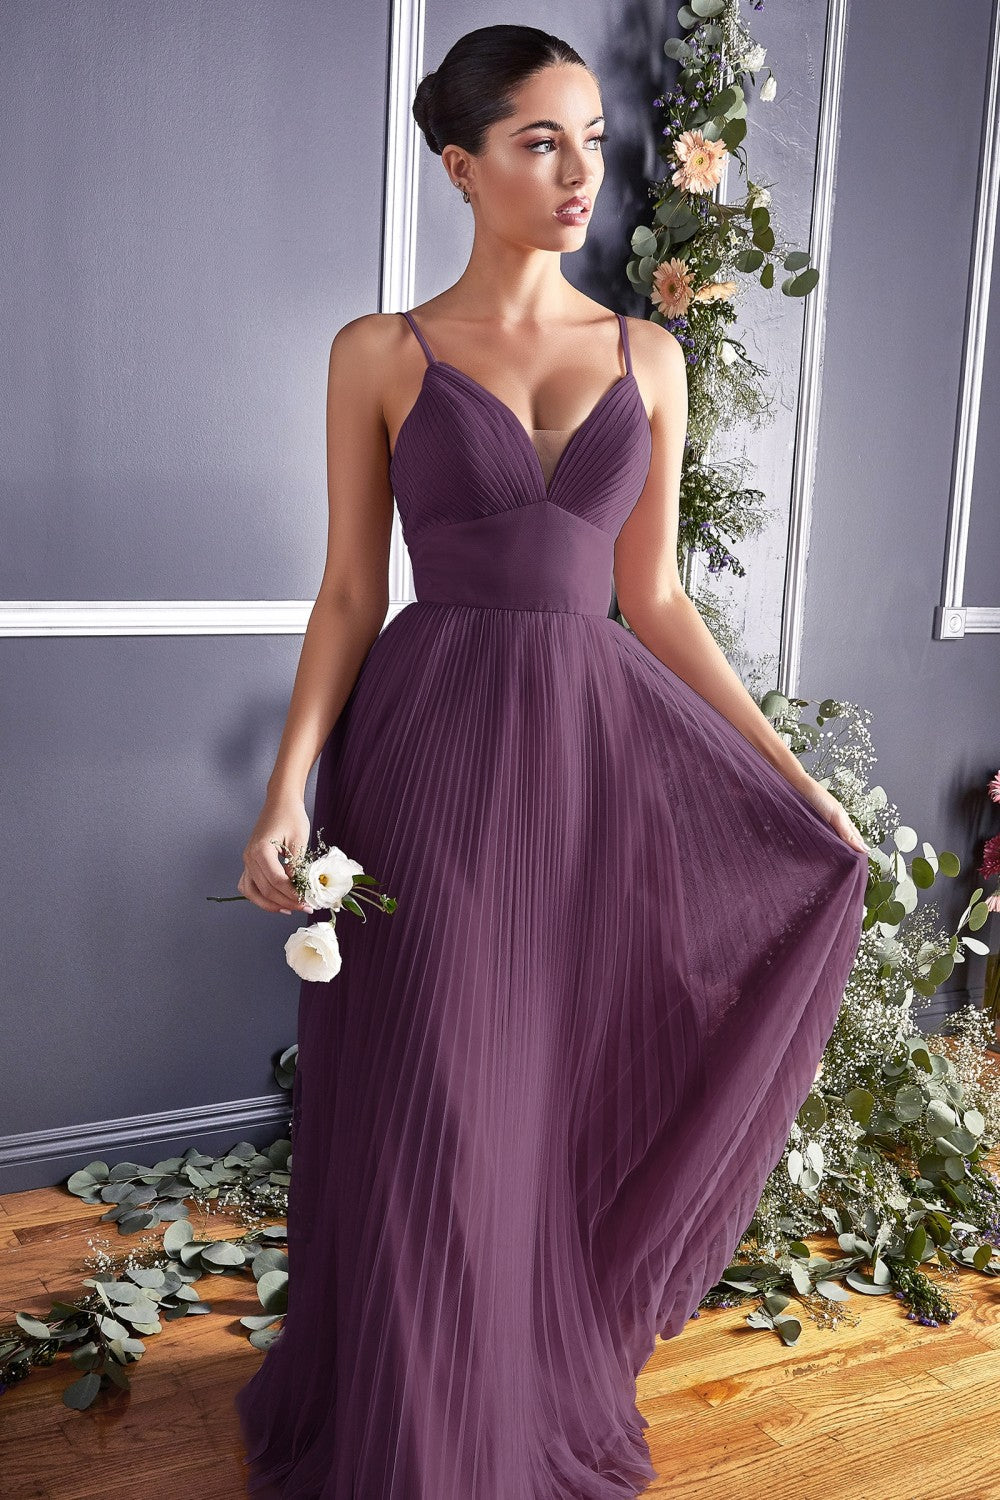 Dahlia Bridesmaid Dress Full Tulle Skirt in Eggplant  C184KR-Eggplant   SAMPLE IN STORE